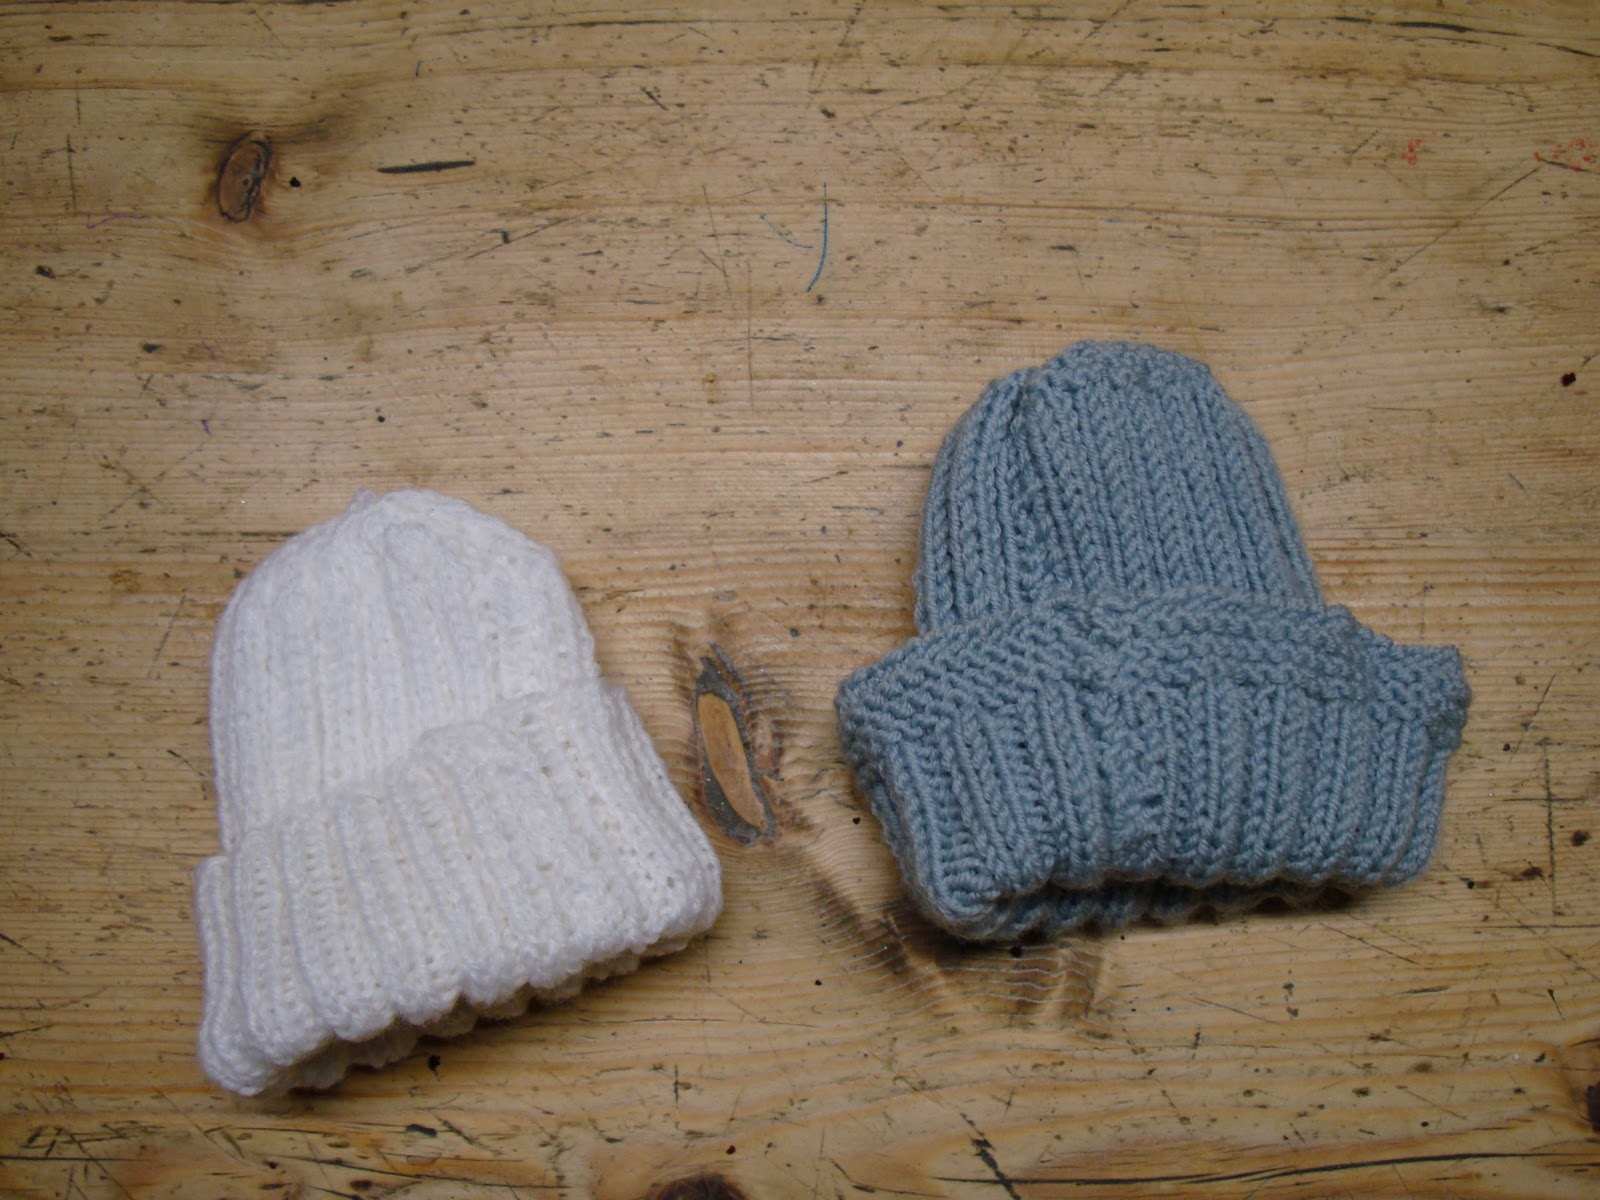 Knit a hat for a premature baby - Knit For Peace